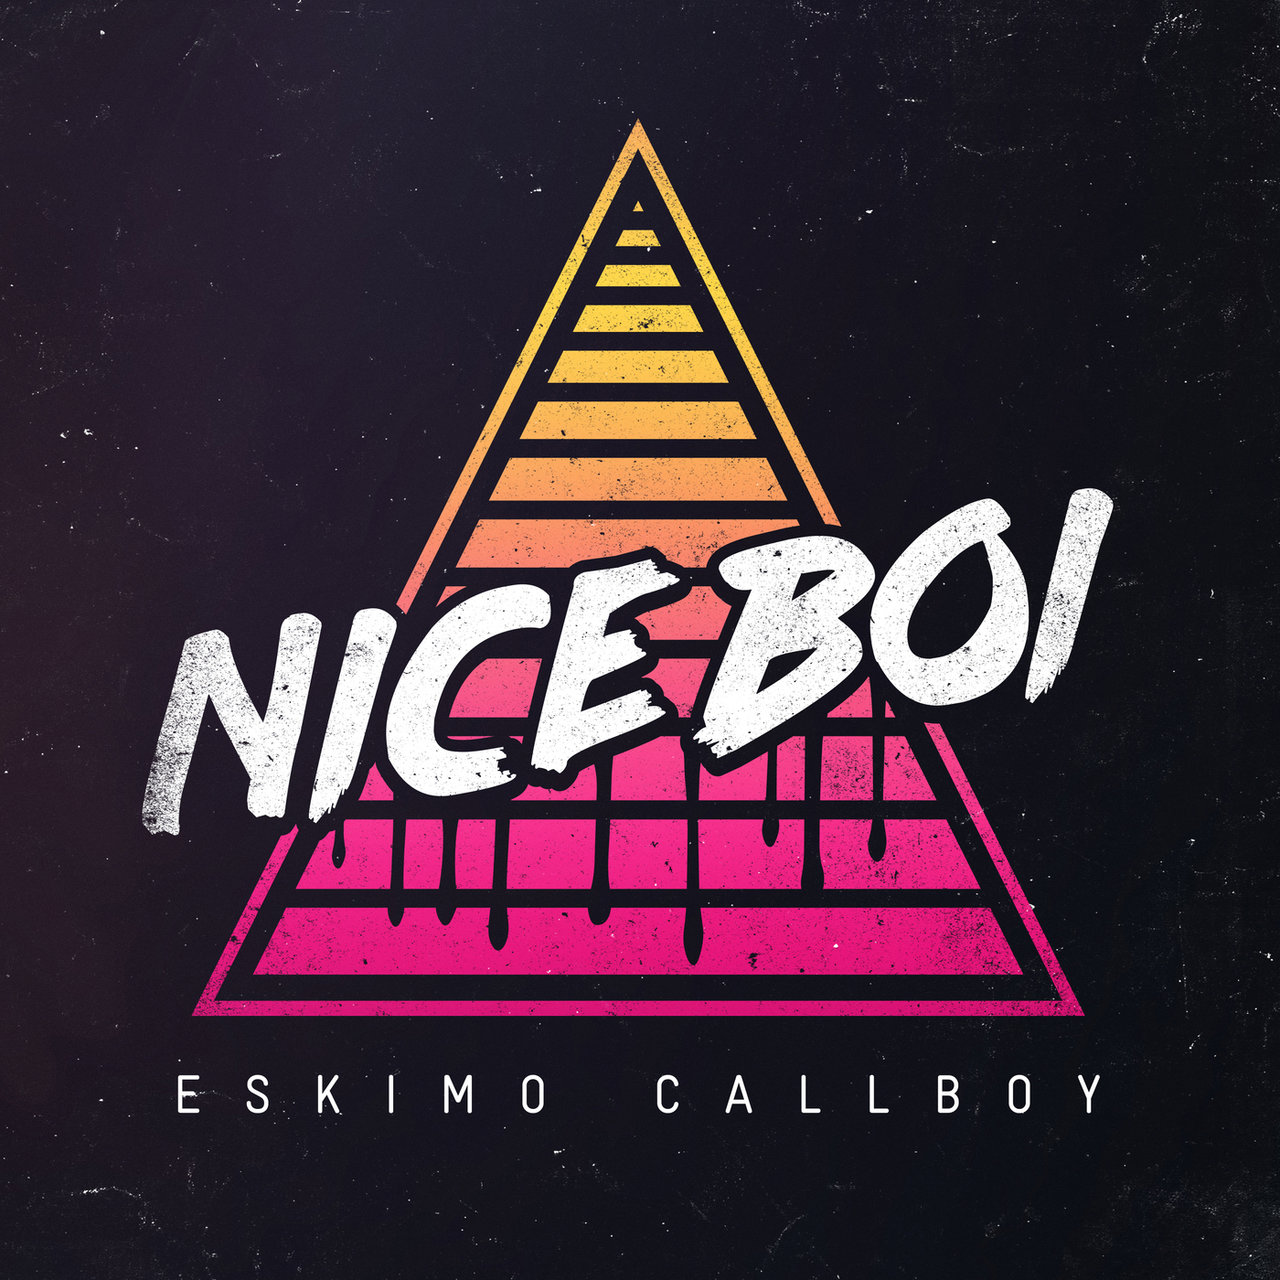 Eskimo Callboy - Nice Boi [single] (2019)